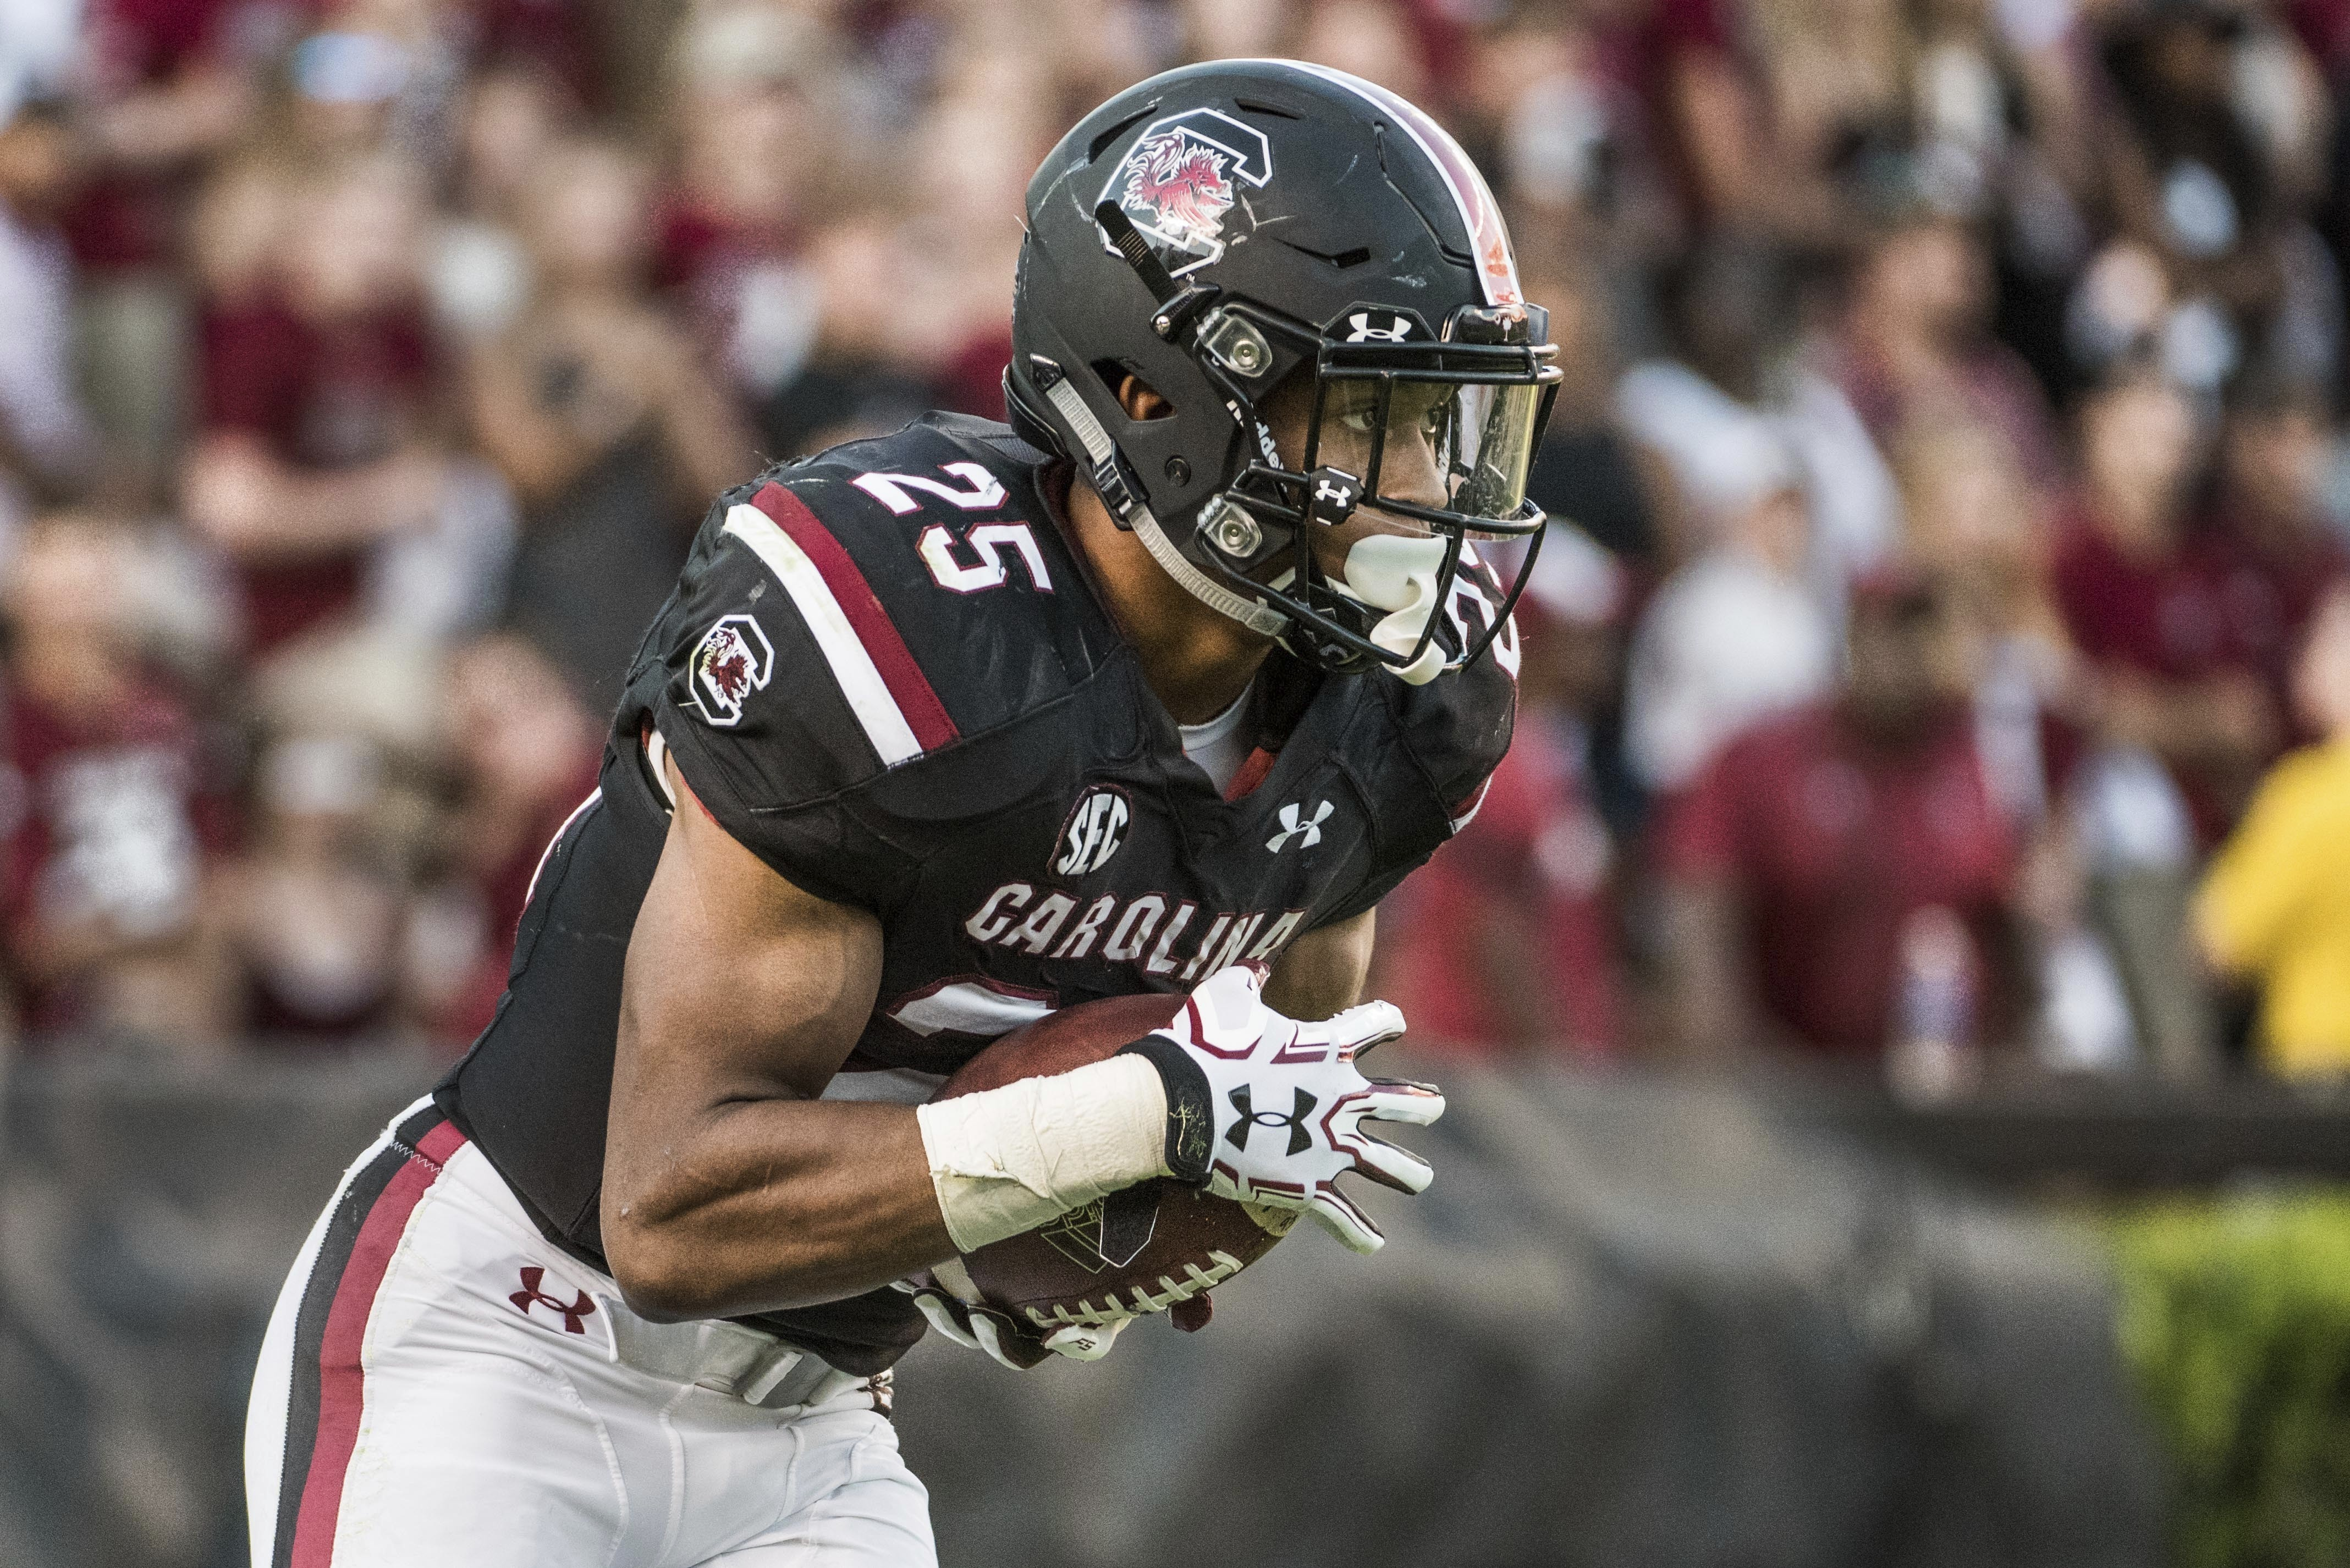 South Carolina running back A.J. Turner (25) returns a kick during the second half of an NCAA college football game against Texas A&M, Saturday, Oct. 1, 2016, in Columbia, S.C. Texas A&M defeated South Carolina 24-13. (AP Photo/Sean Rayford)